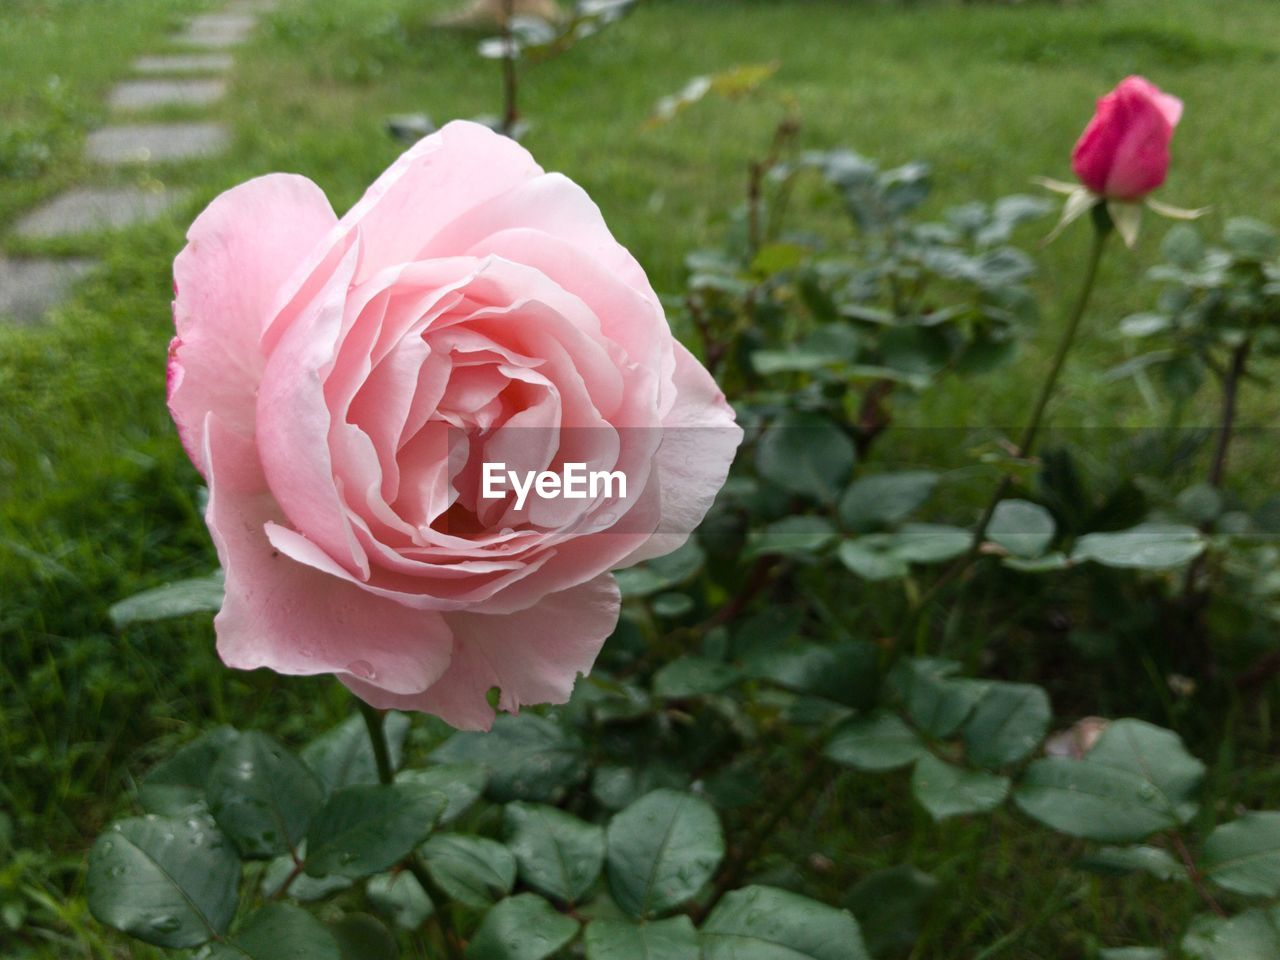 flower, flowering plant, plant, beauty in nature, freshness, petal, pink color, close-up, rose, inflorescence, flower head, fragility, rose - flower, vulnerability, growth, nature, focus on foreground, leaf, plant part, no people, outdoors, springtime